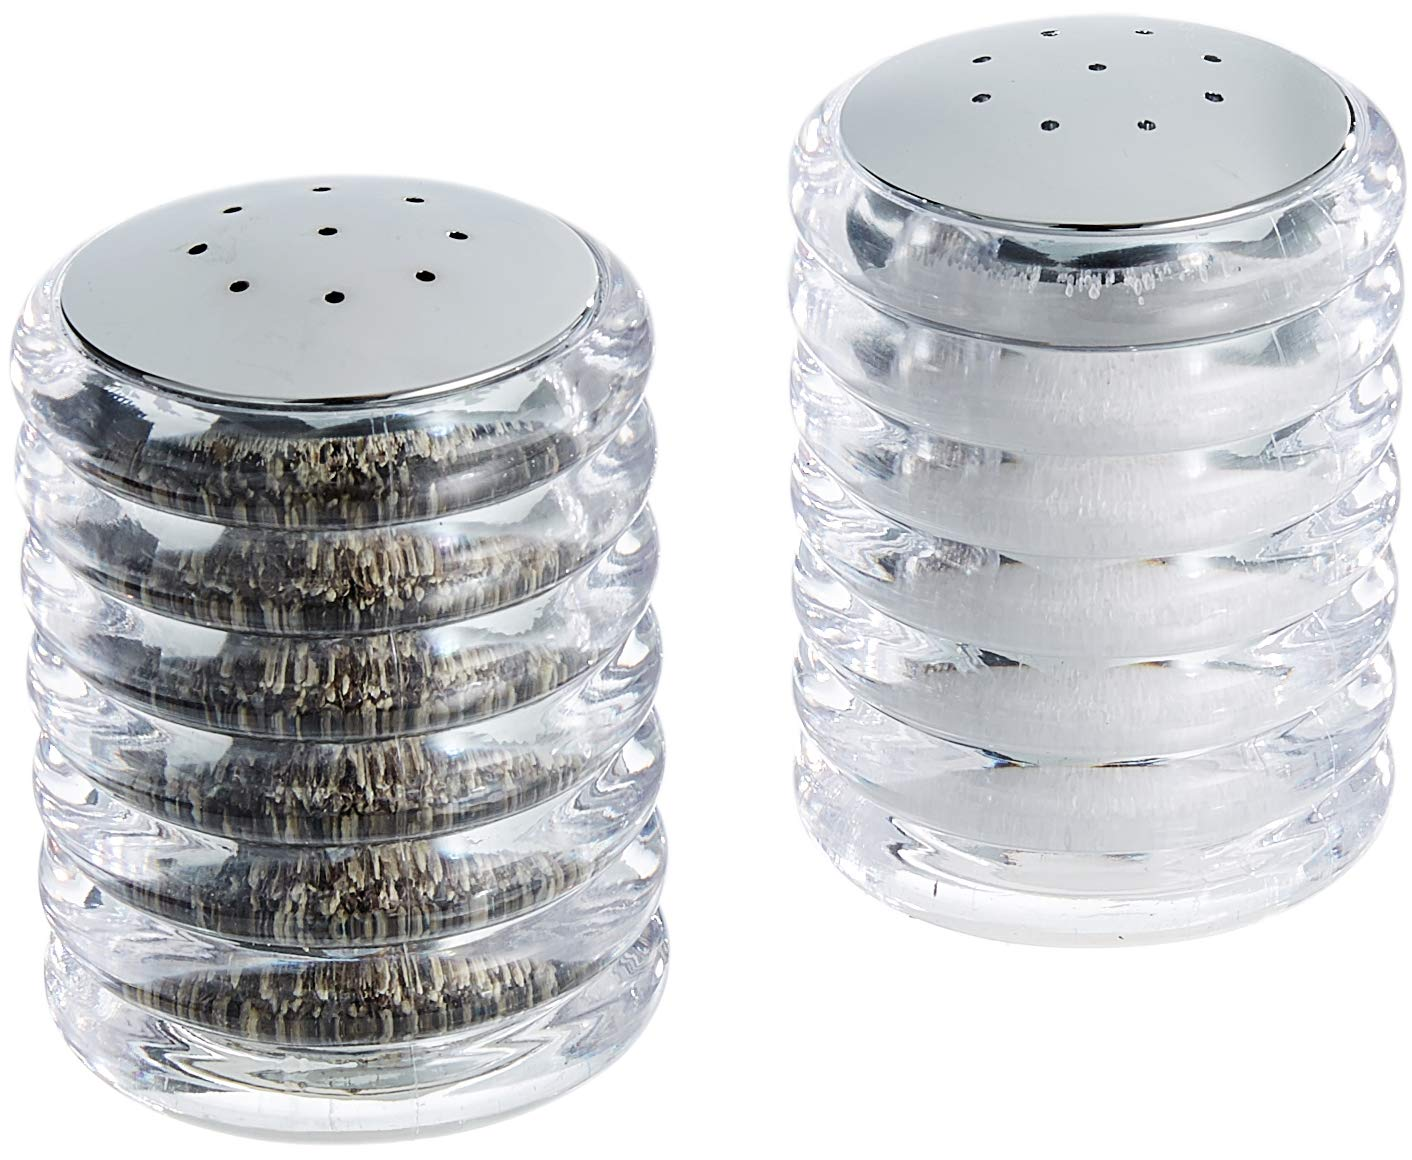 Cole & Mason Beehive Acrylic Salt and Pepper Shaker Set, Ceramic, 10 x 5 x 7 cm DKB Household Uk H820950 Shakers